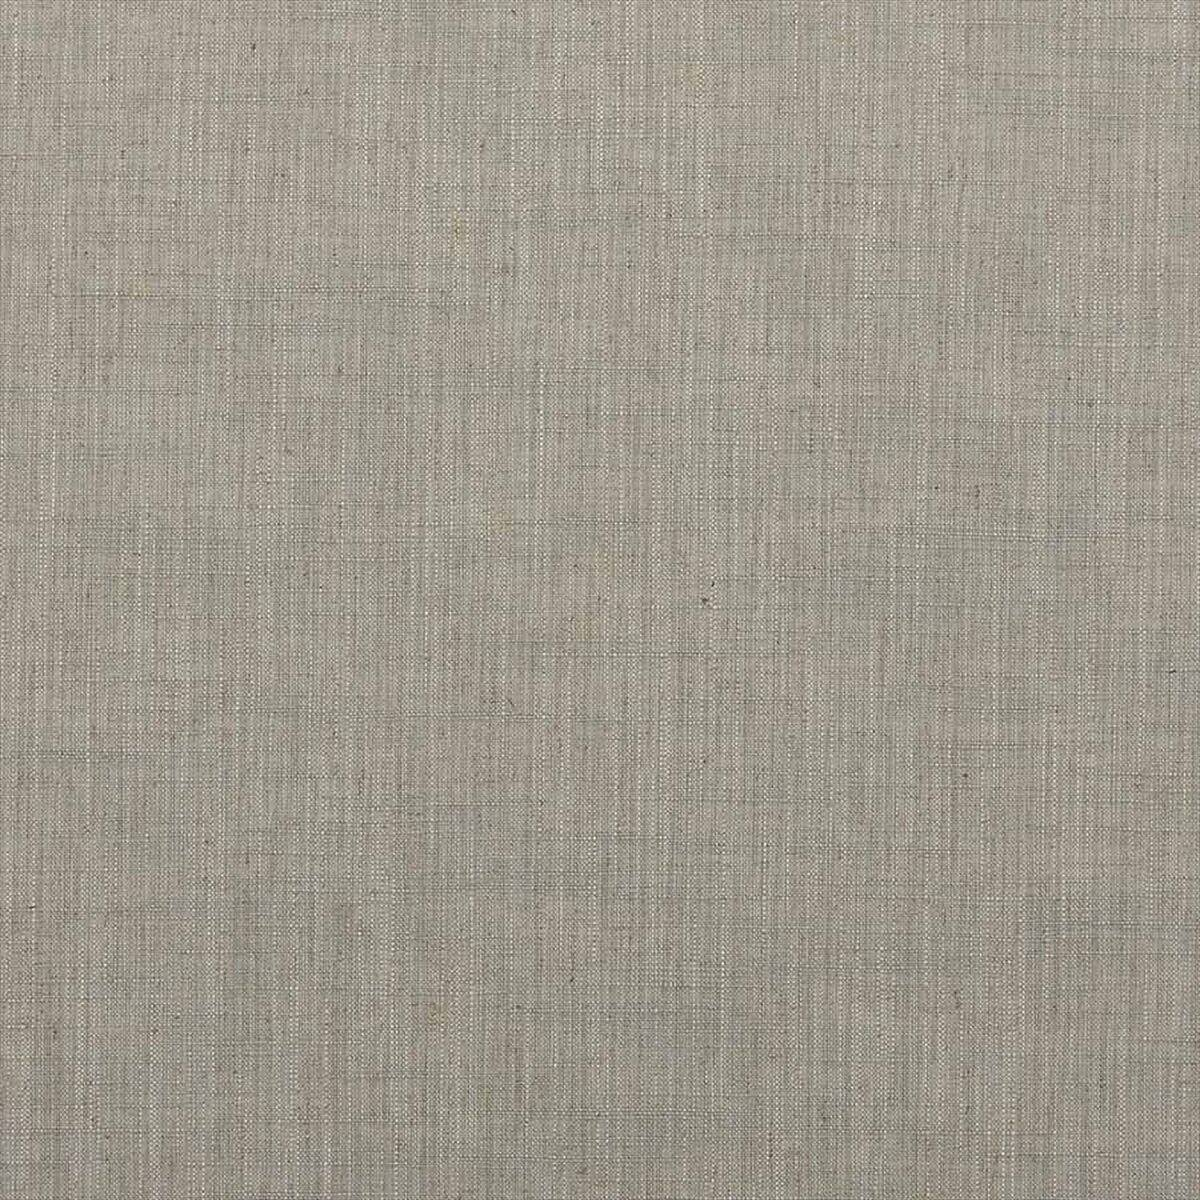 1592 Collection - Sunwashed Linen